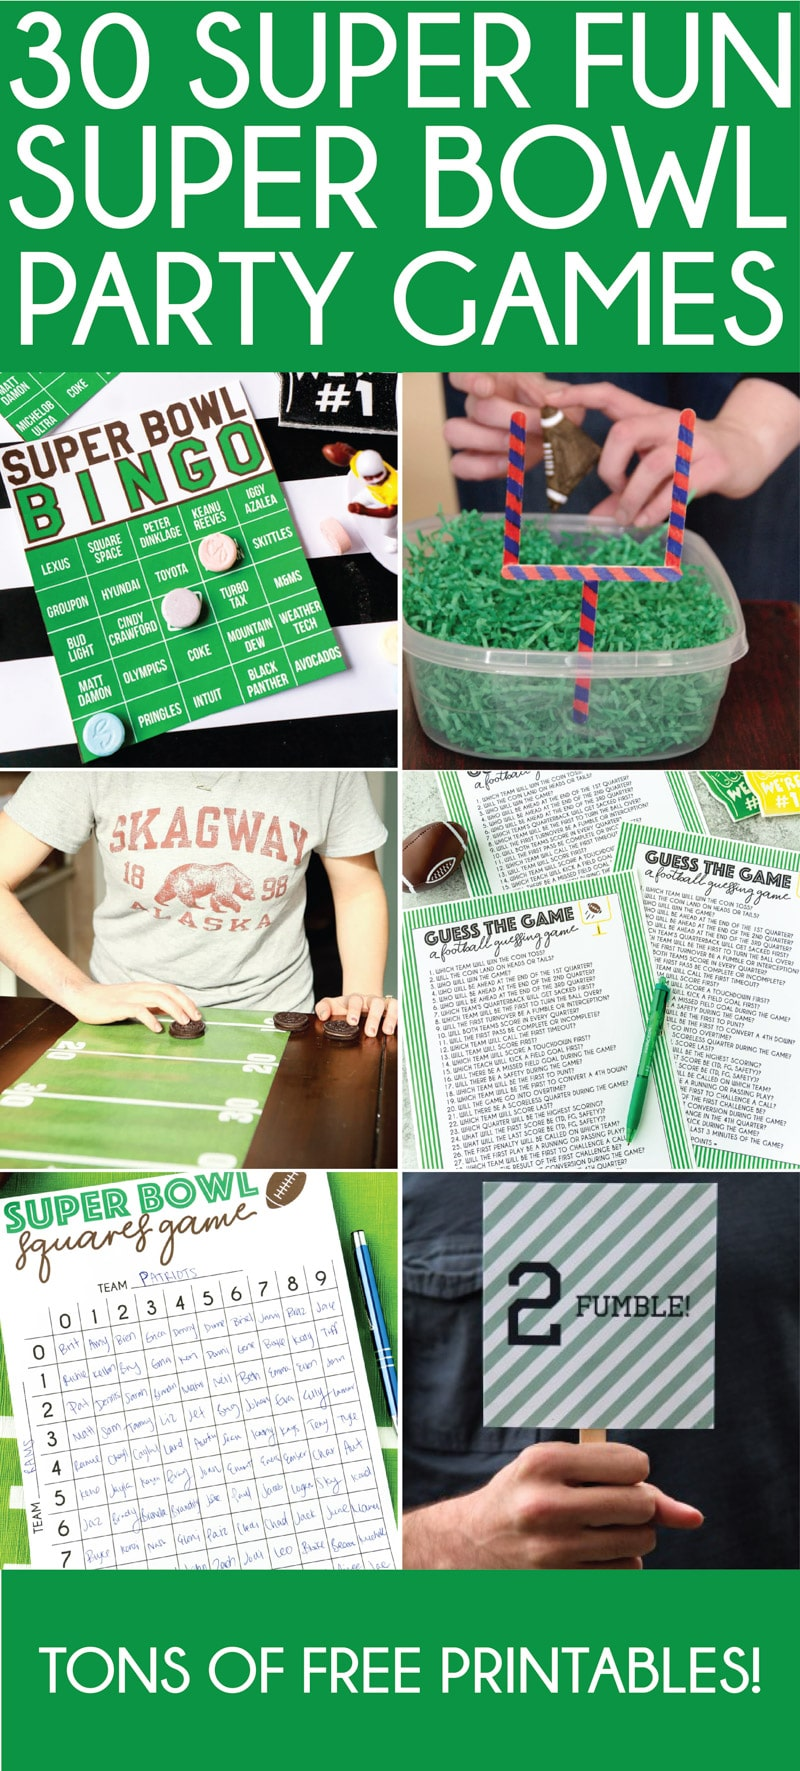 The best Super Bowl party games ever! Games for kids, games for adults, betting games, bingo, and more!